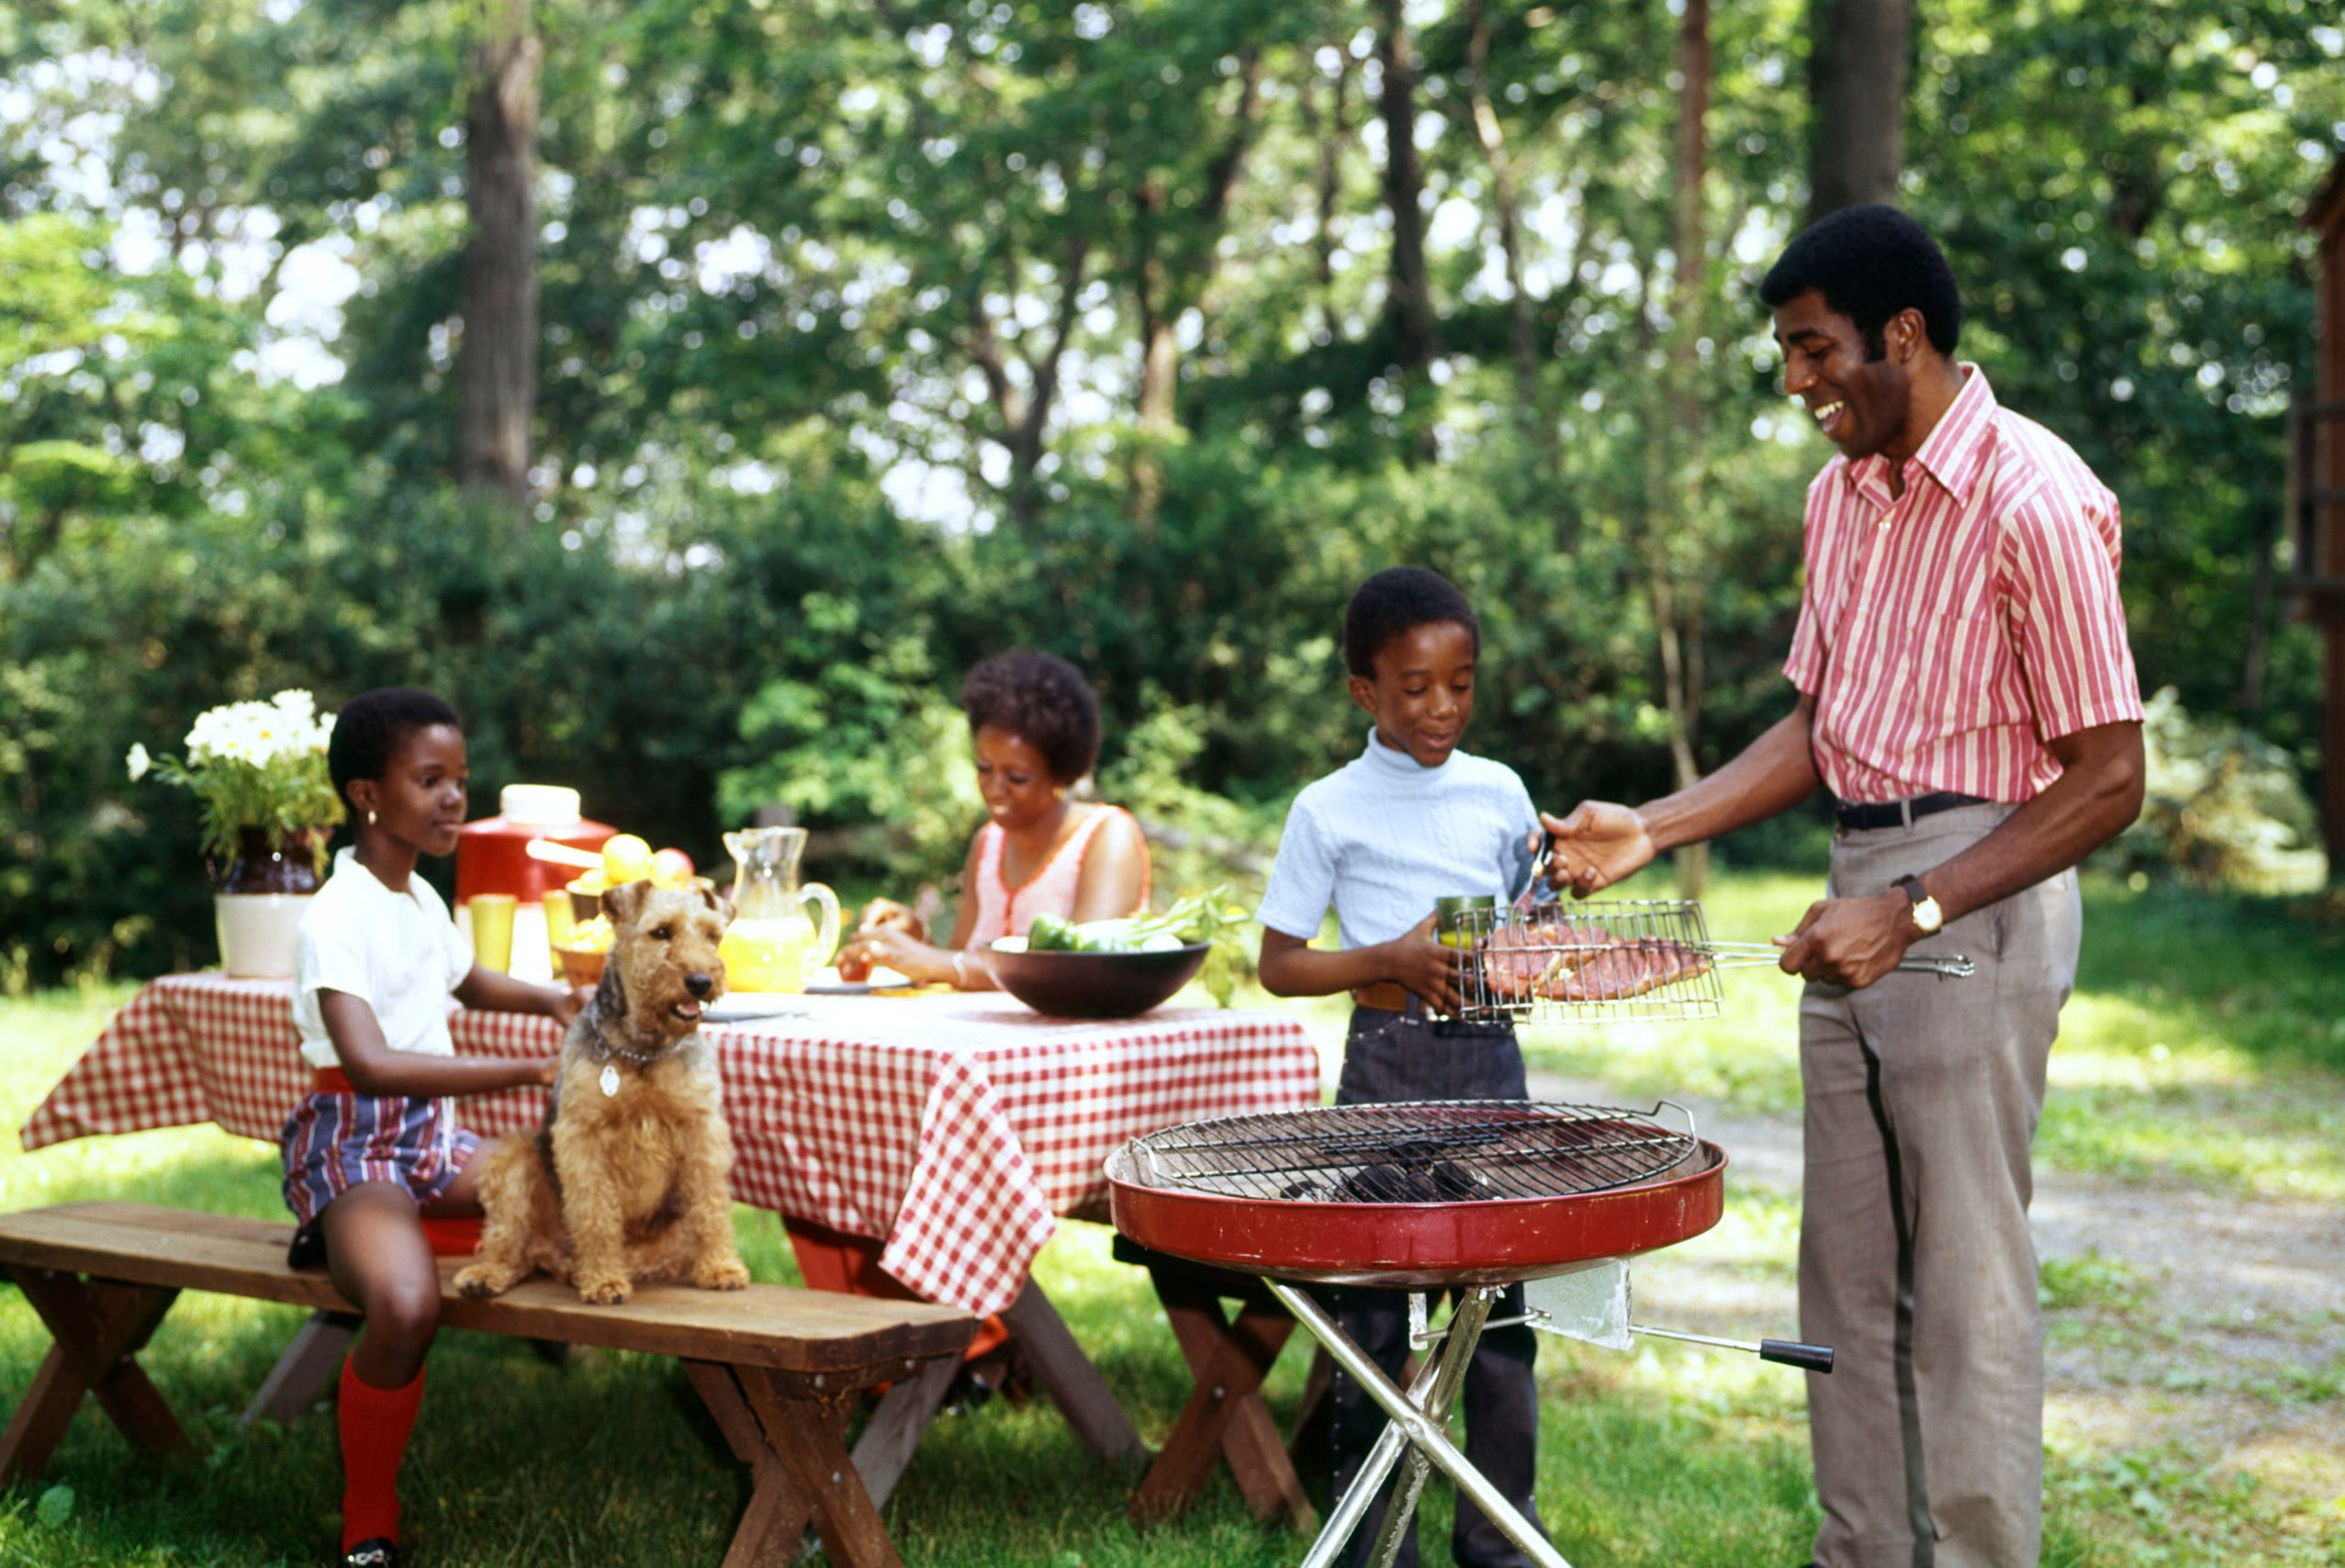 1970s AFRICAN AMERICAN FAMILY BACKYARD PICNIC BARBECUE